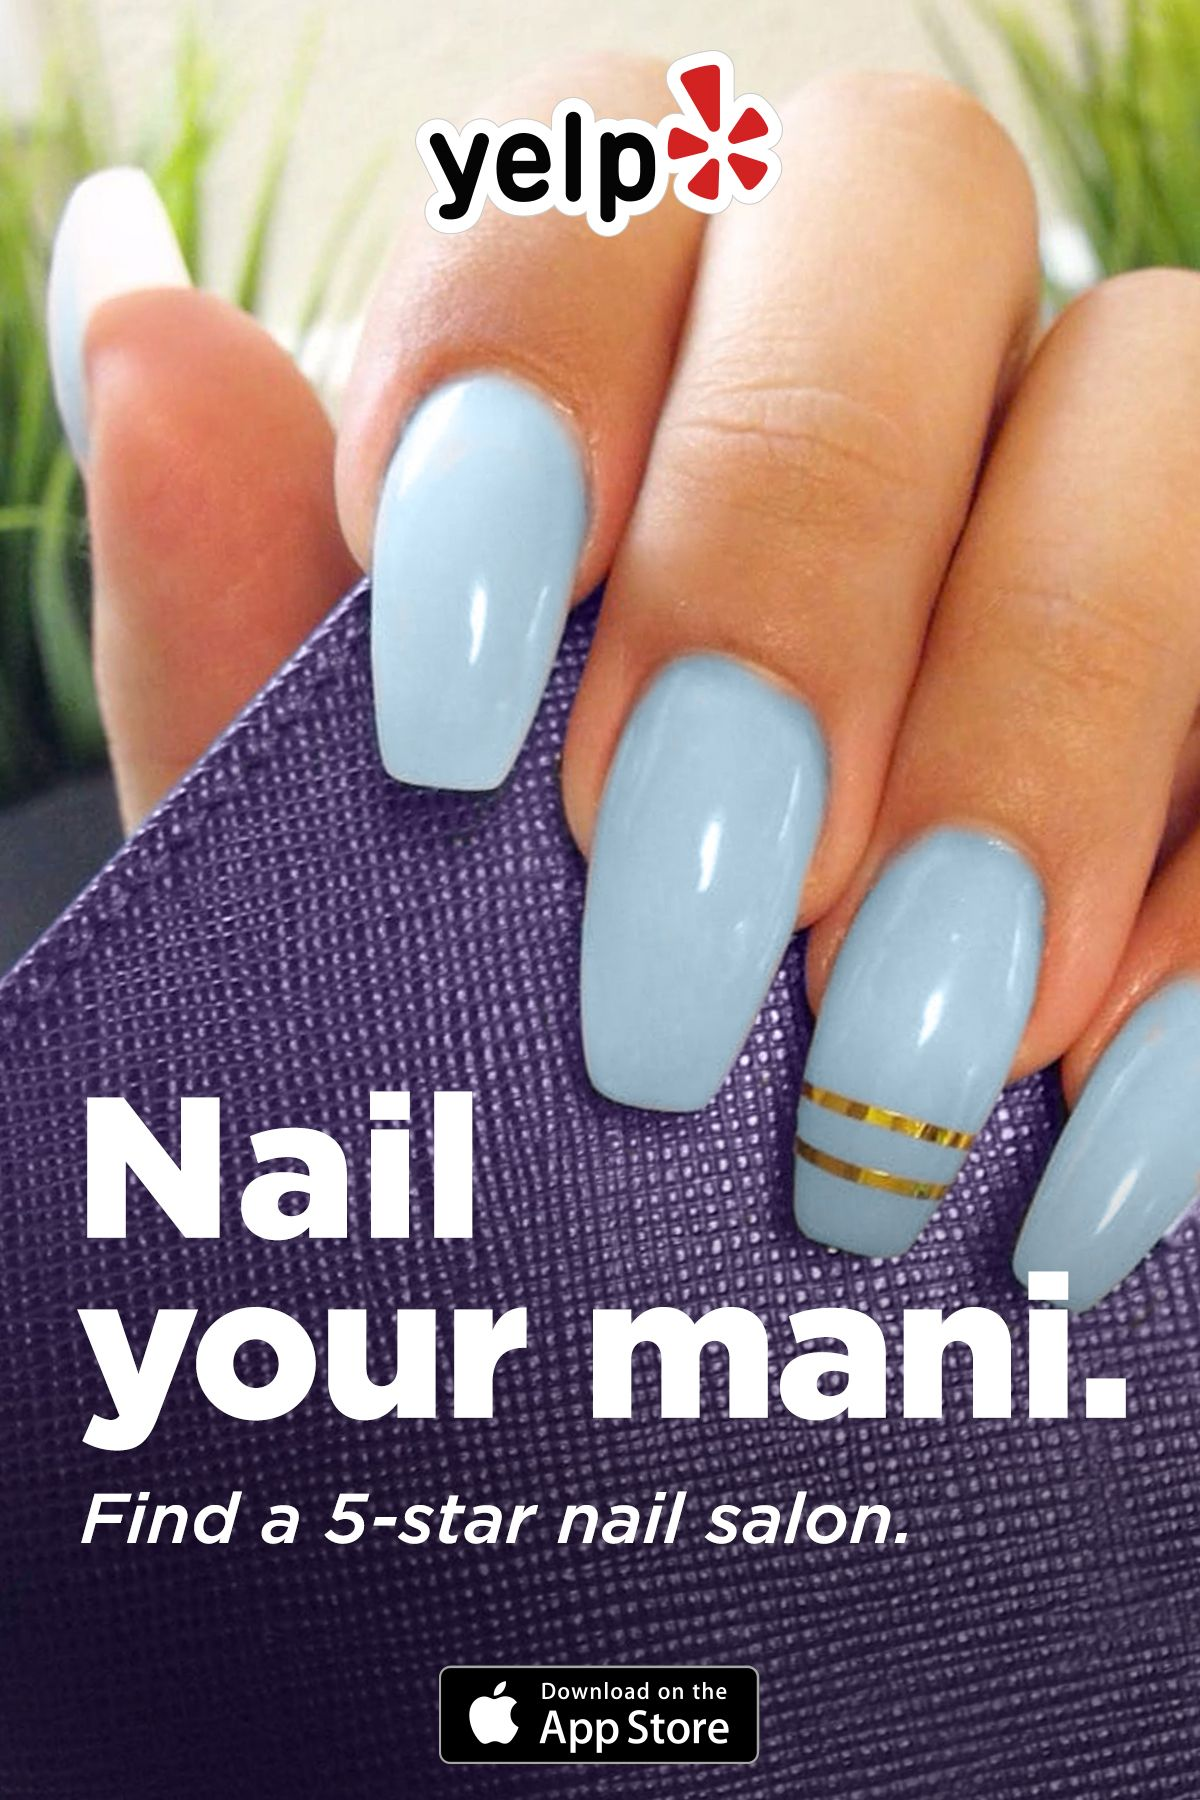 Step Up Your Nail Game Download Yelp To Find Highly Rated Nail Salons That Can Add A Little Or A Lot Of Flare To Your Mani Luxury Nails Nails Trendy Nails